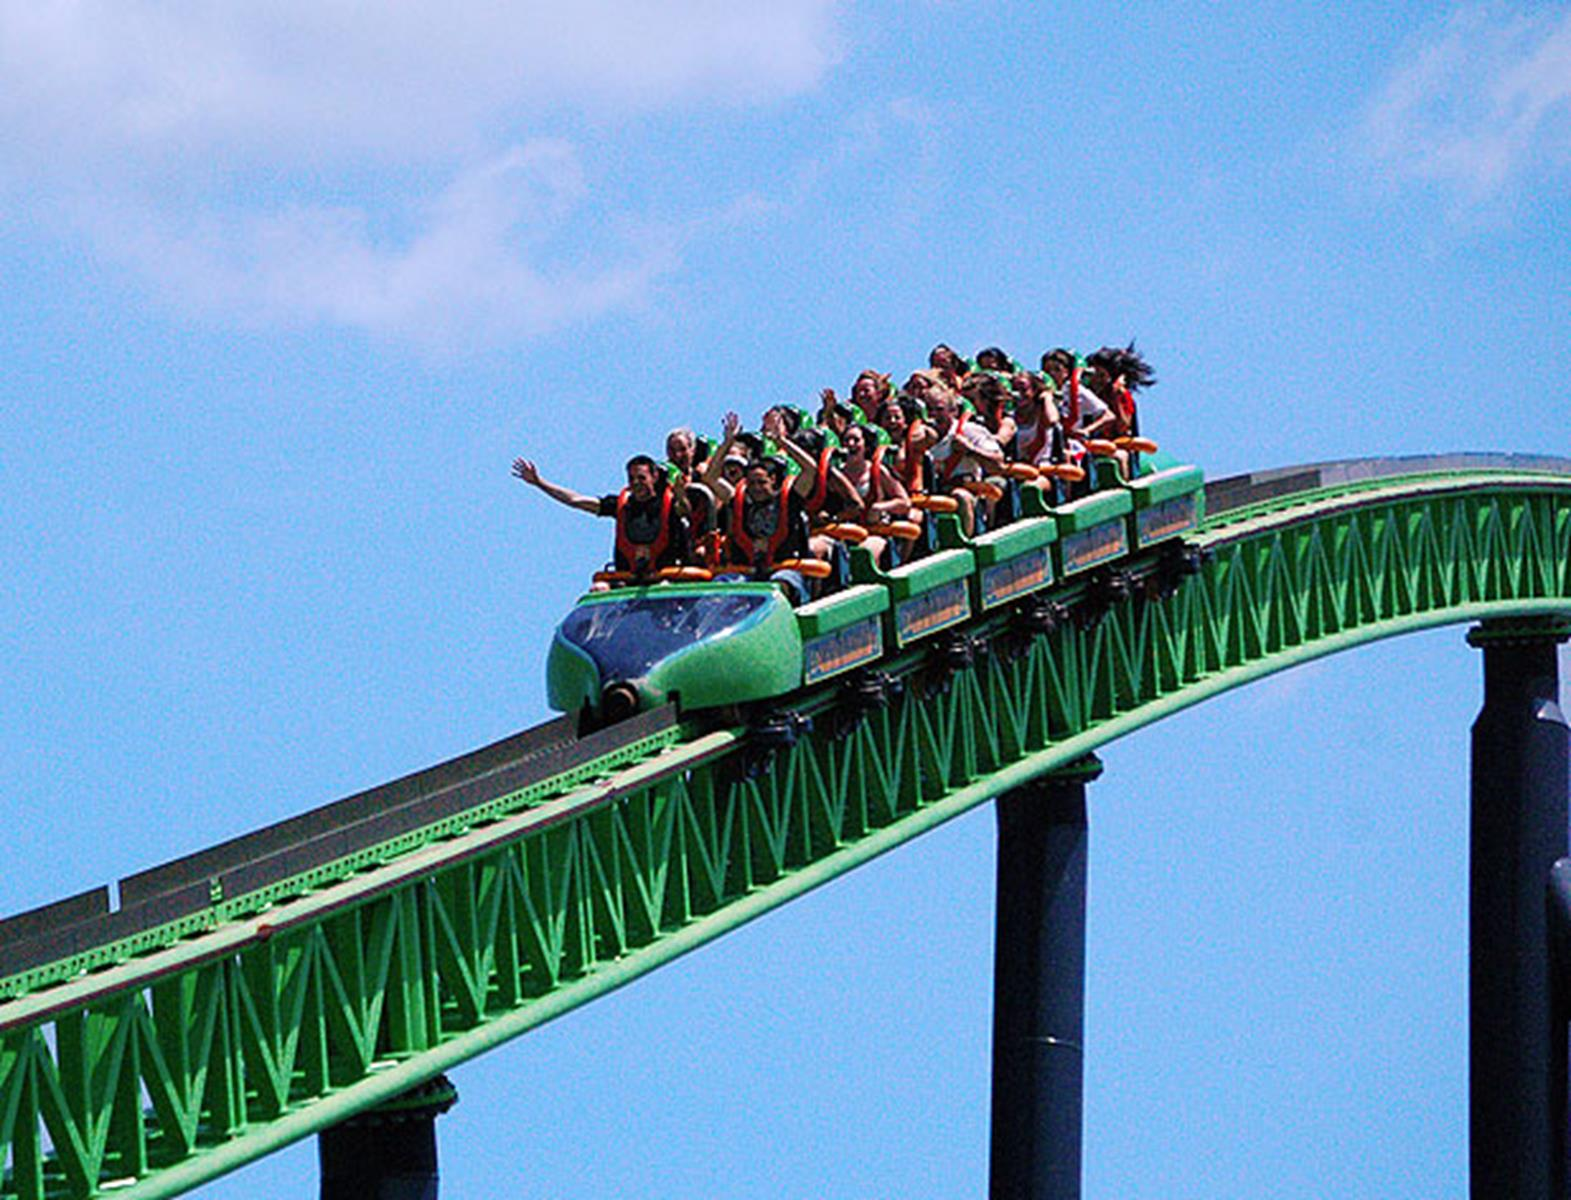 Riders on a roller coast at Six Flags Amusement Park.